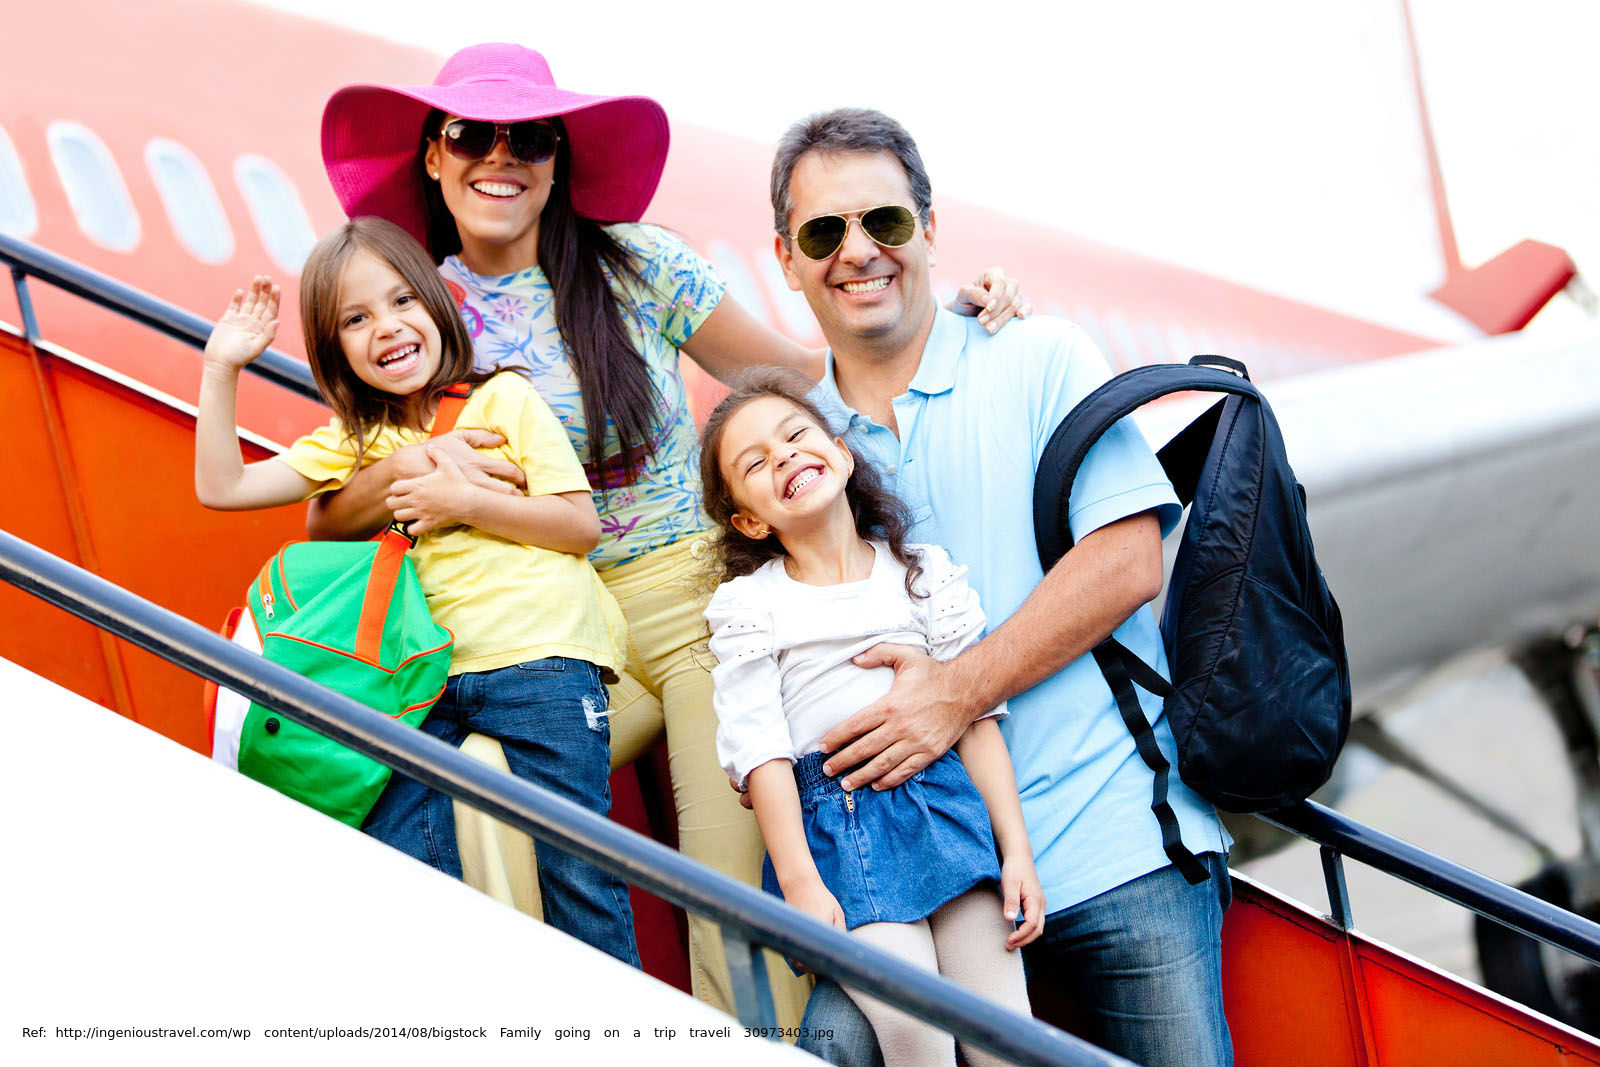 bigstock-Family-going-on-a-trip-traveli-30973403